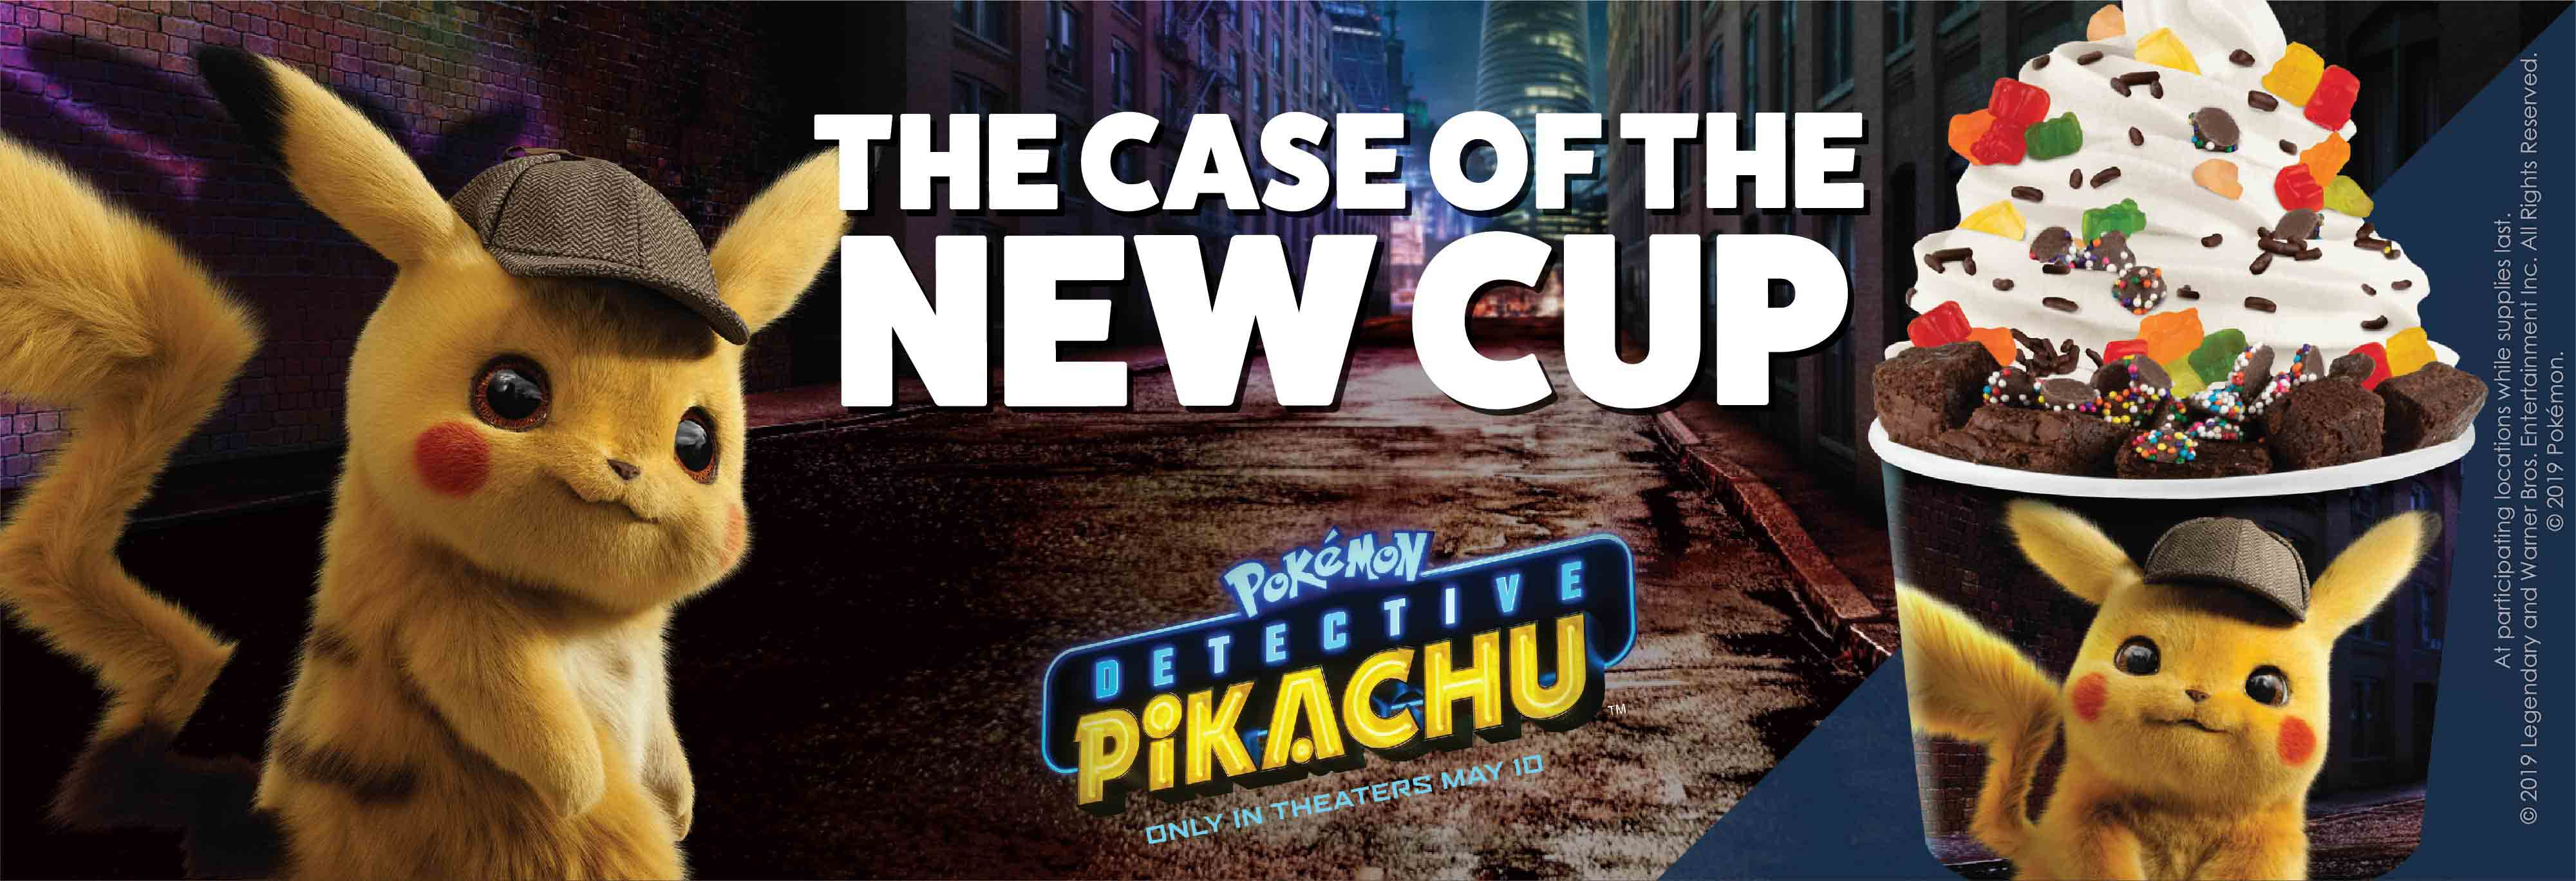 Detective Pikachu Cup. Complete your investigation of our new flavors in our new POKÉMON Detective Pikachu cup, available at Menchie's stores now for a limited time only.